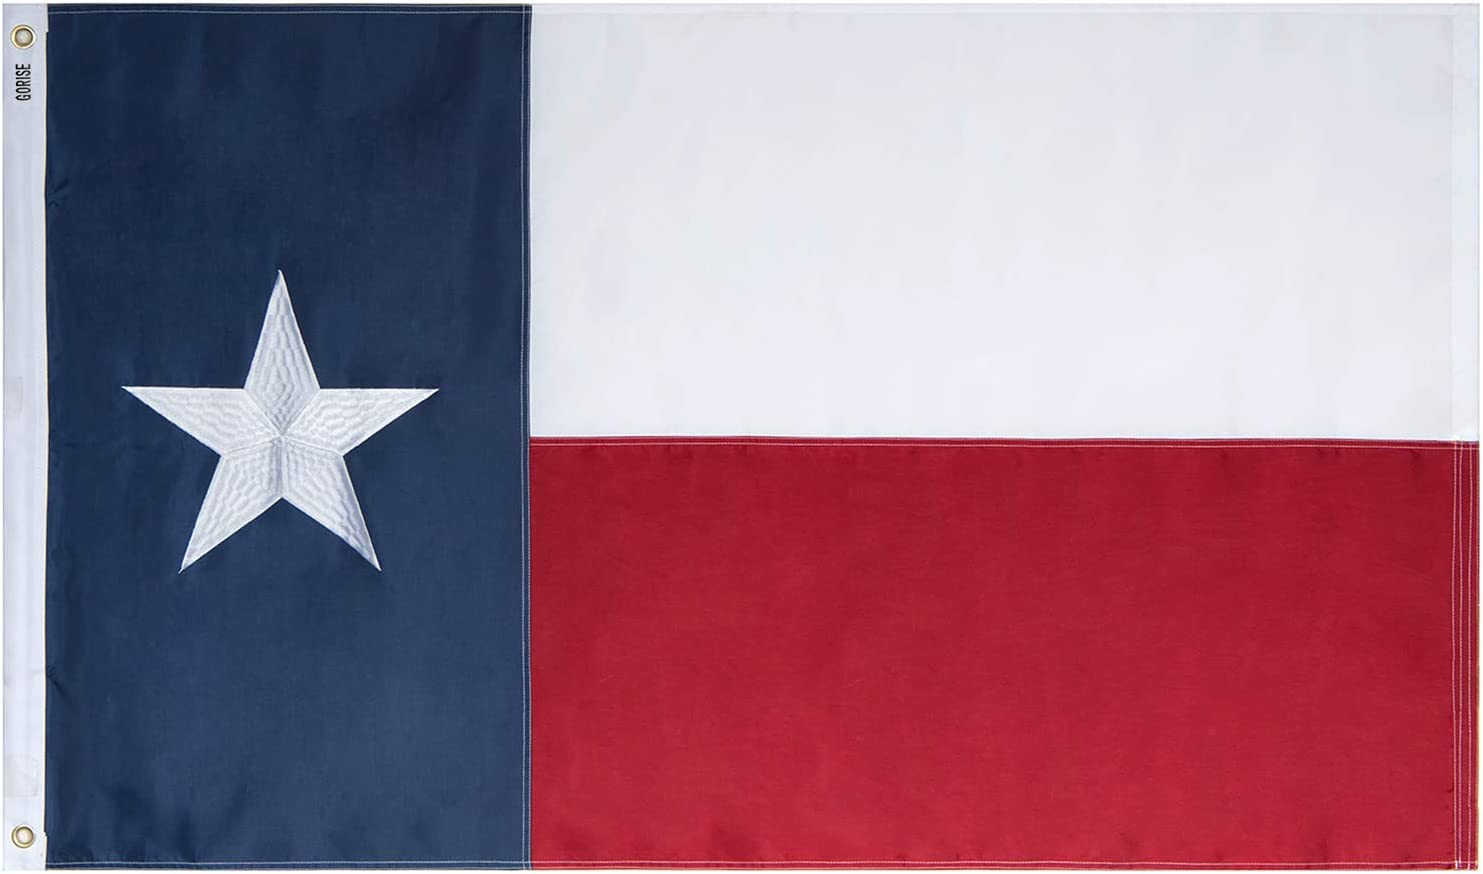 GORISE US Texas Flag 3x5 ft, State Flags of Texas Embroidered Stars with Brass Grommets for Durable US TX Flags Garden Decor (Texas Flag 3x5 Ft)